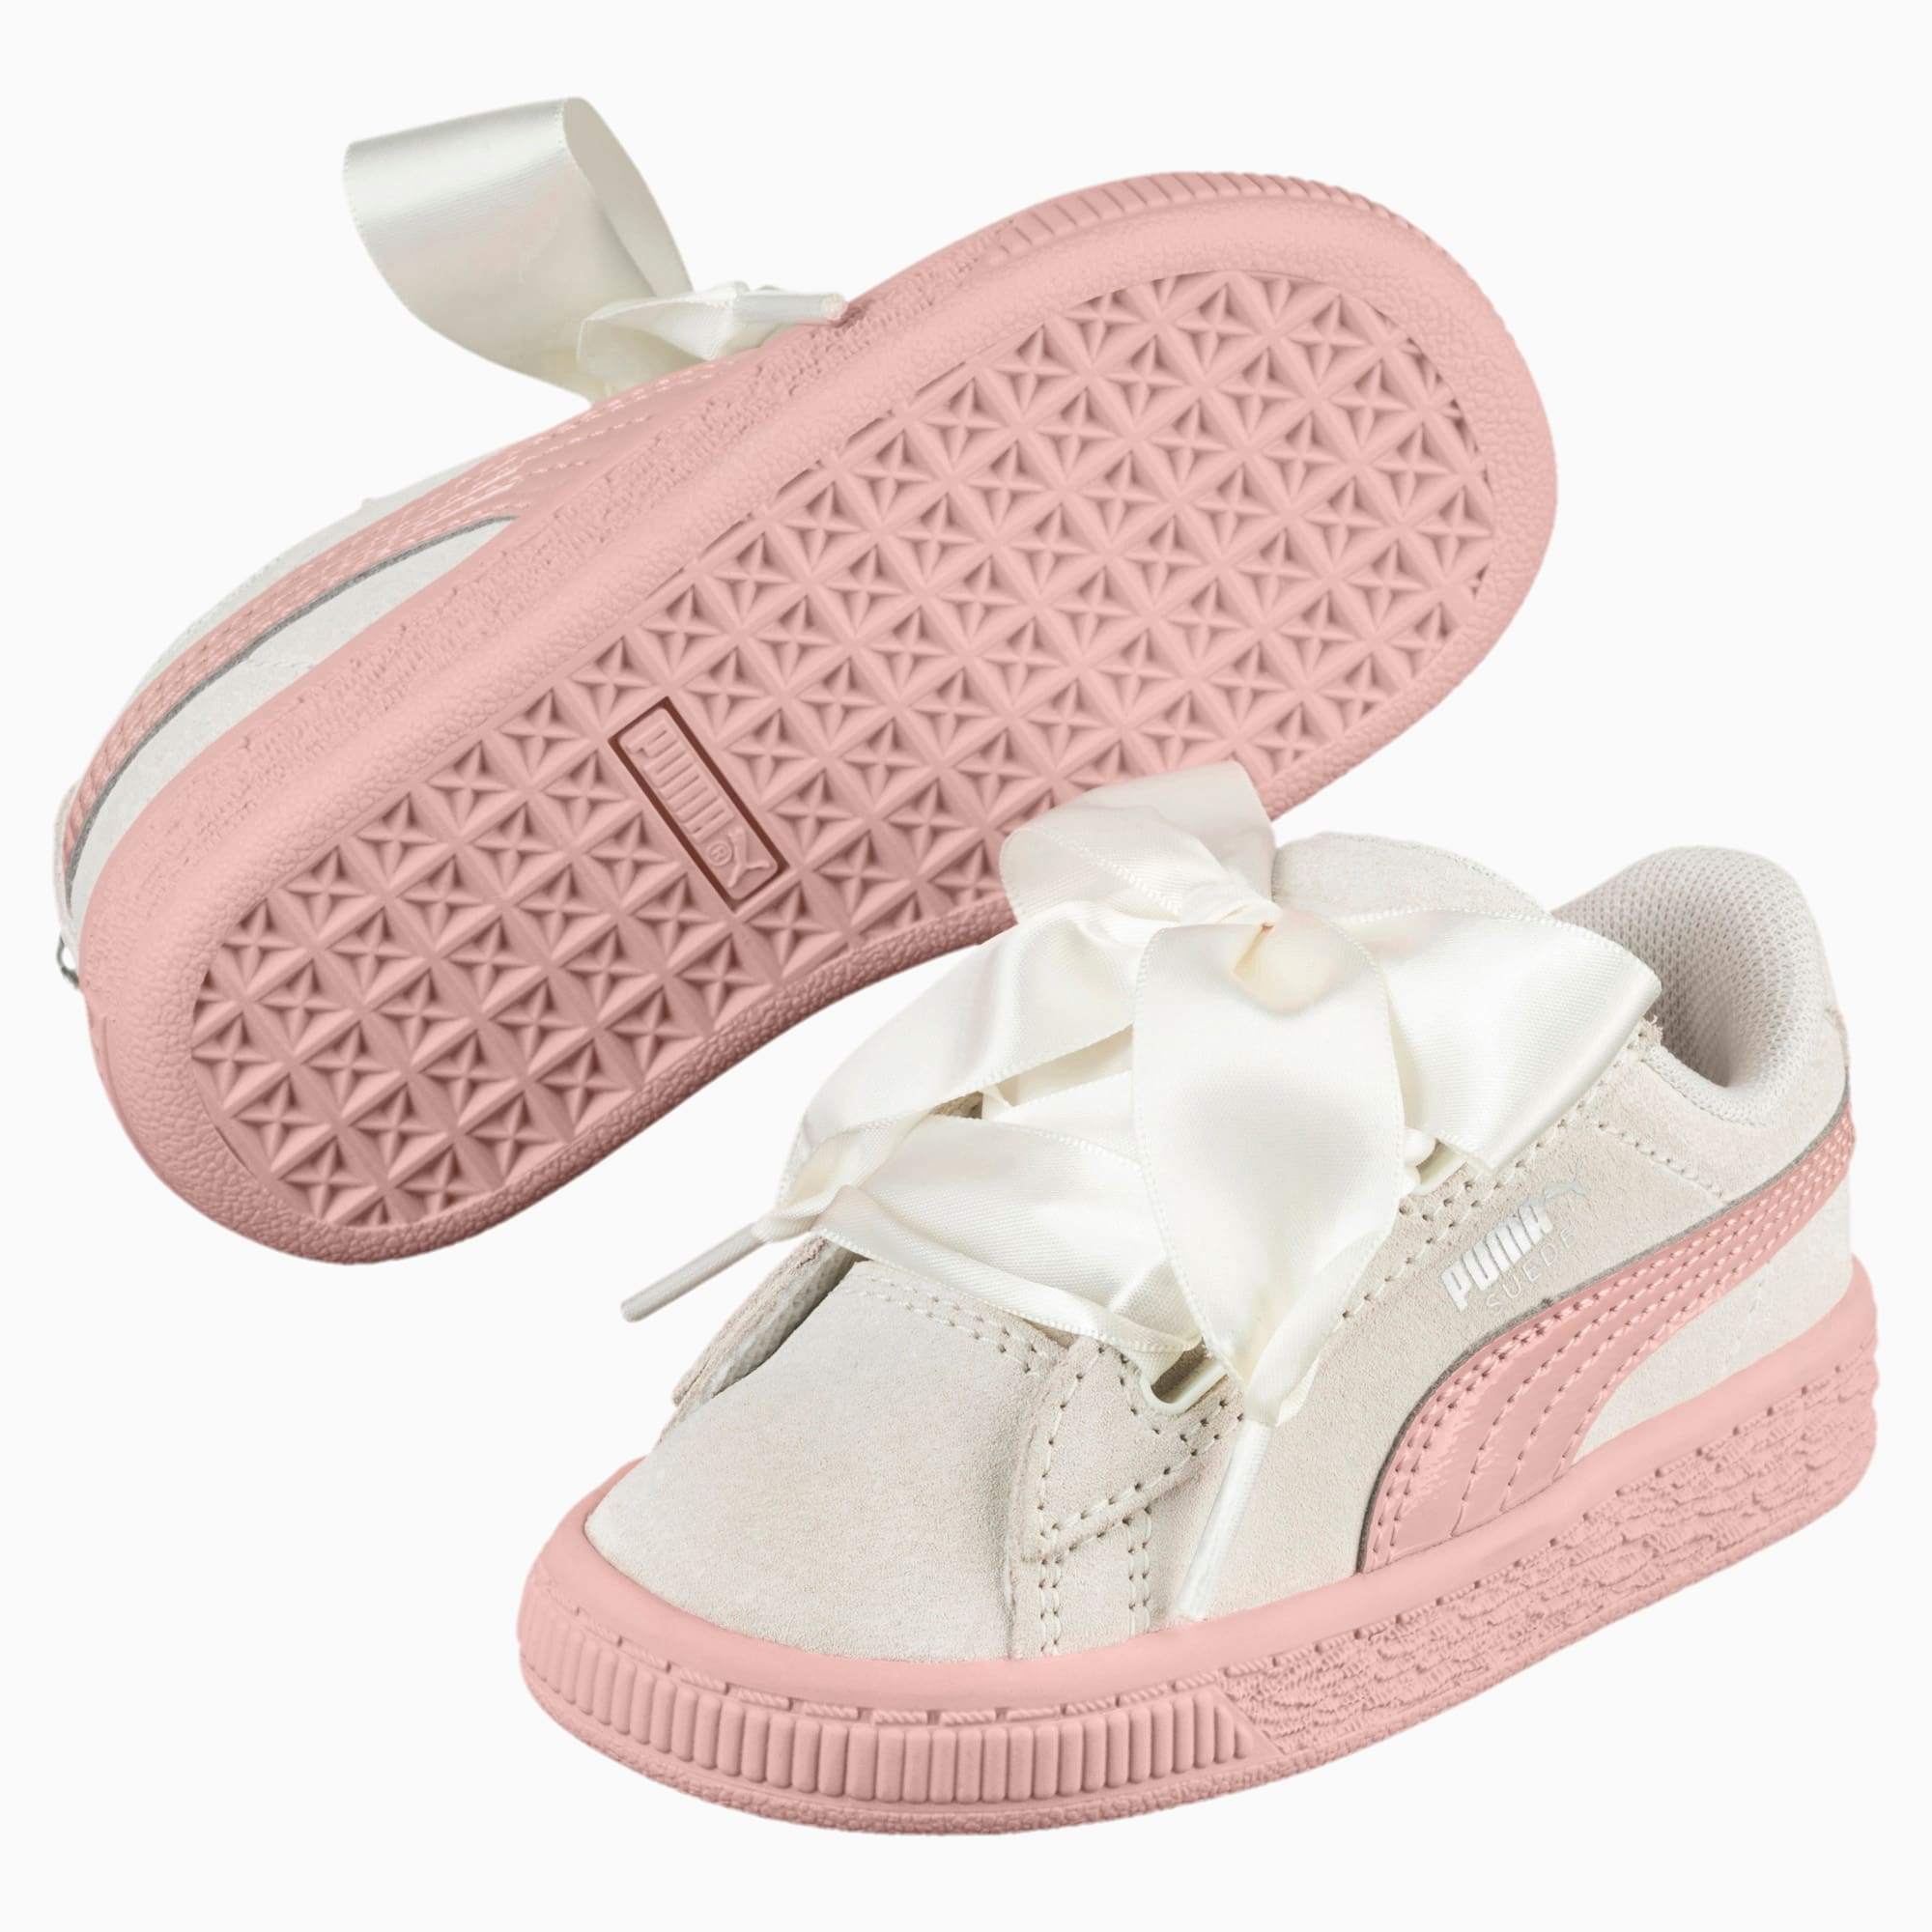 Suede Heart Jewel Toddler Shoes | PUMA US